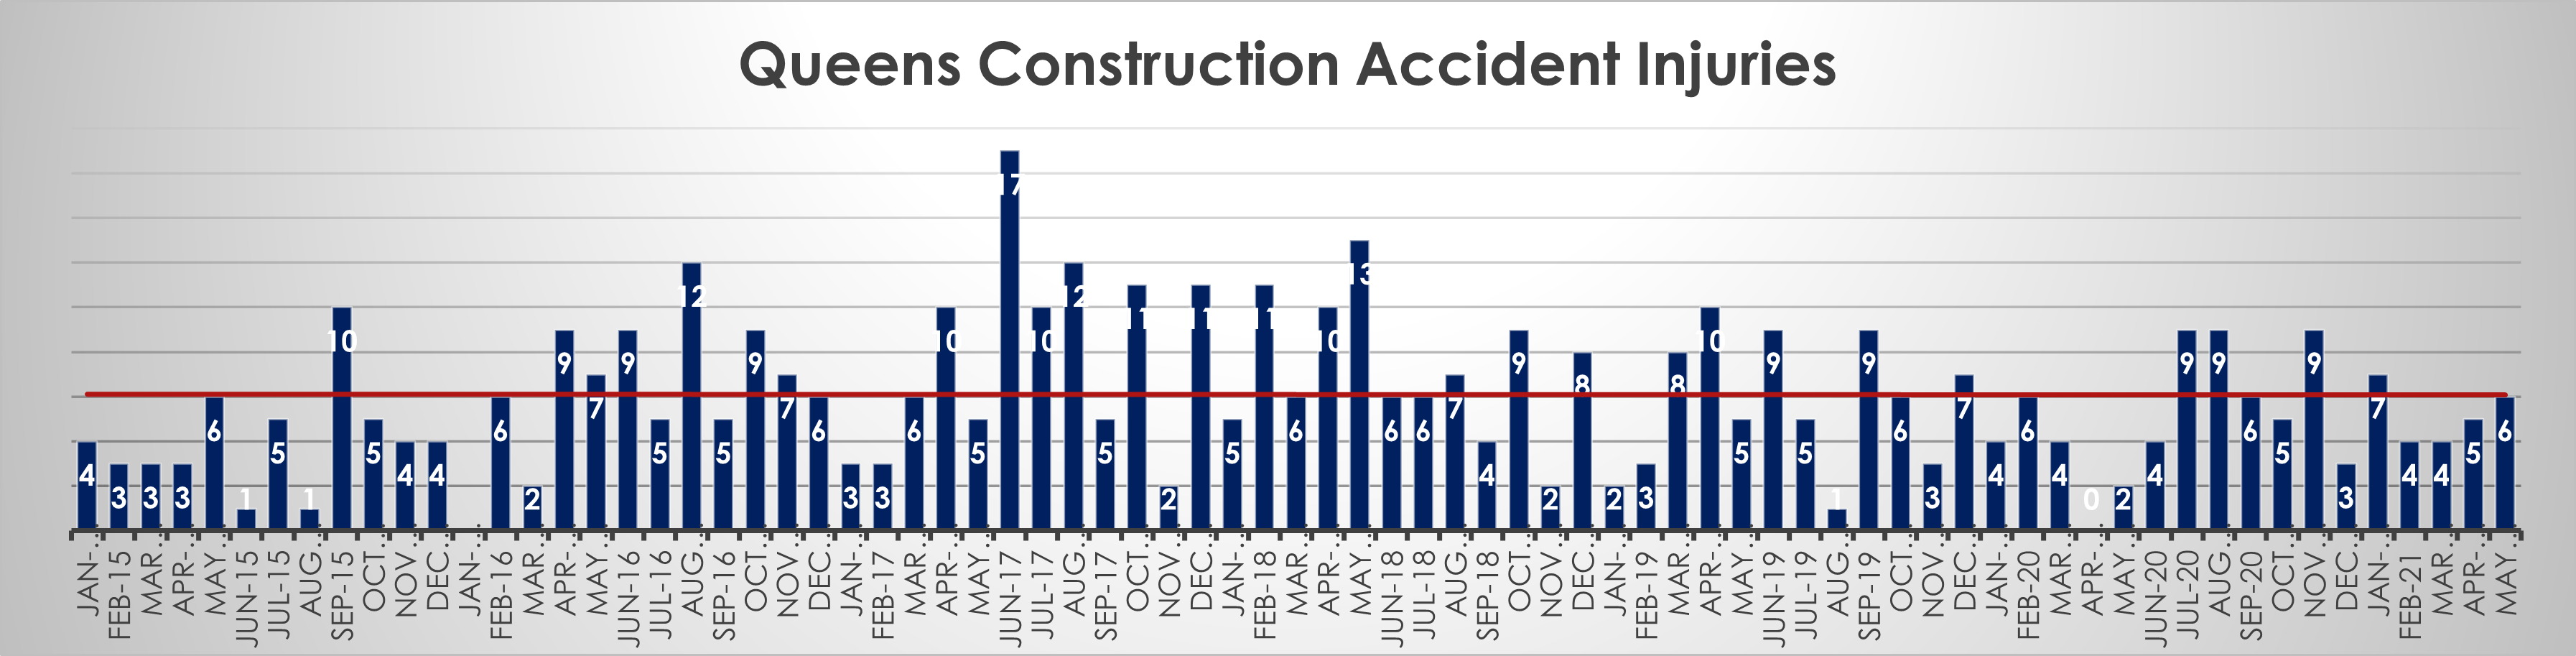 Queens hard hat injuries May 21